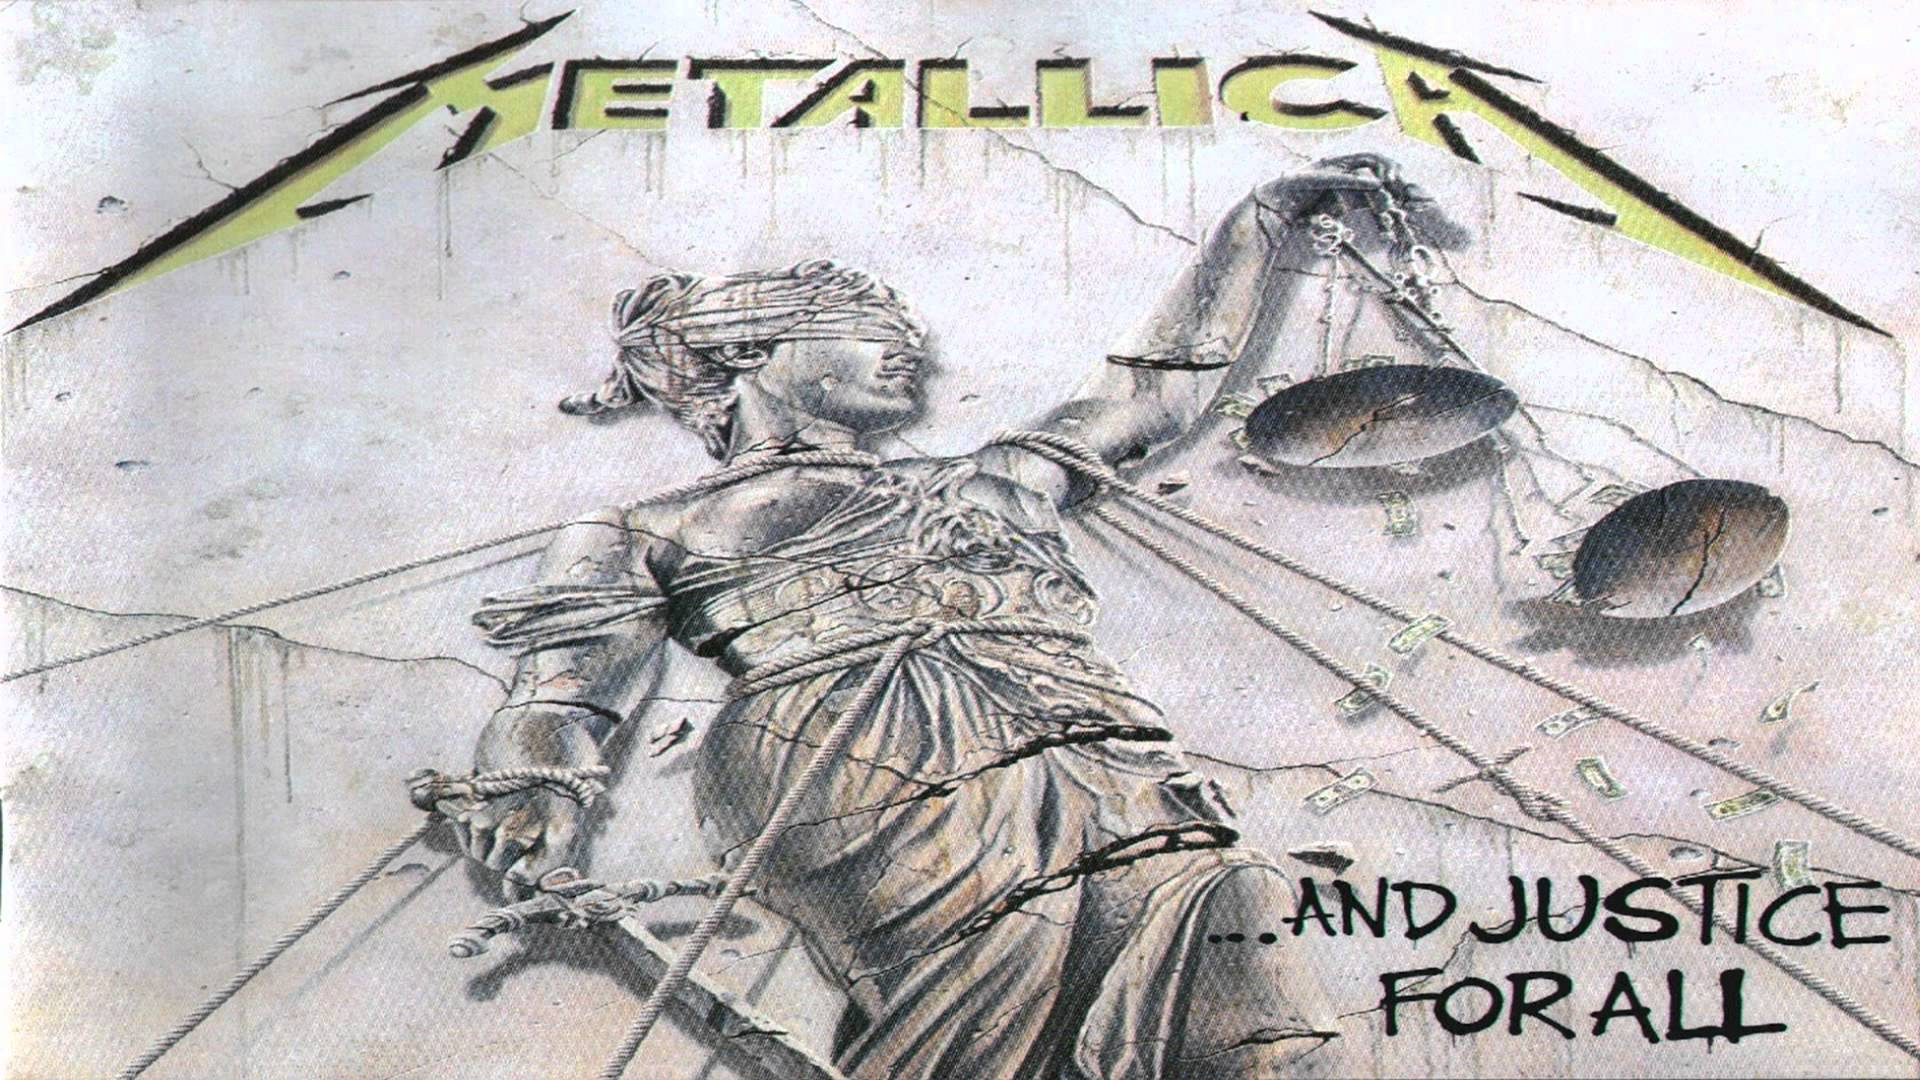 Displaying 16 Images For   Metallica Wallpaper And Justice For All 1920x1080